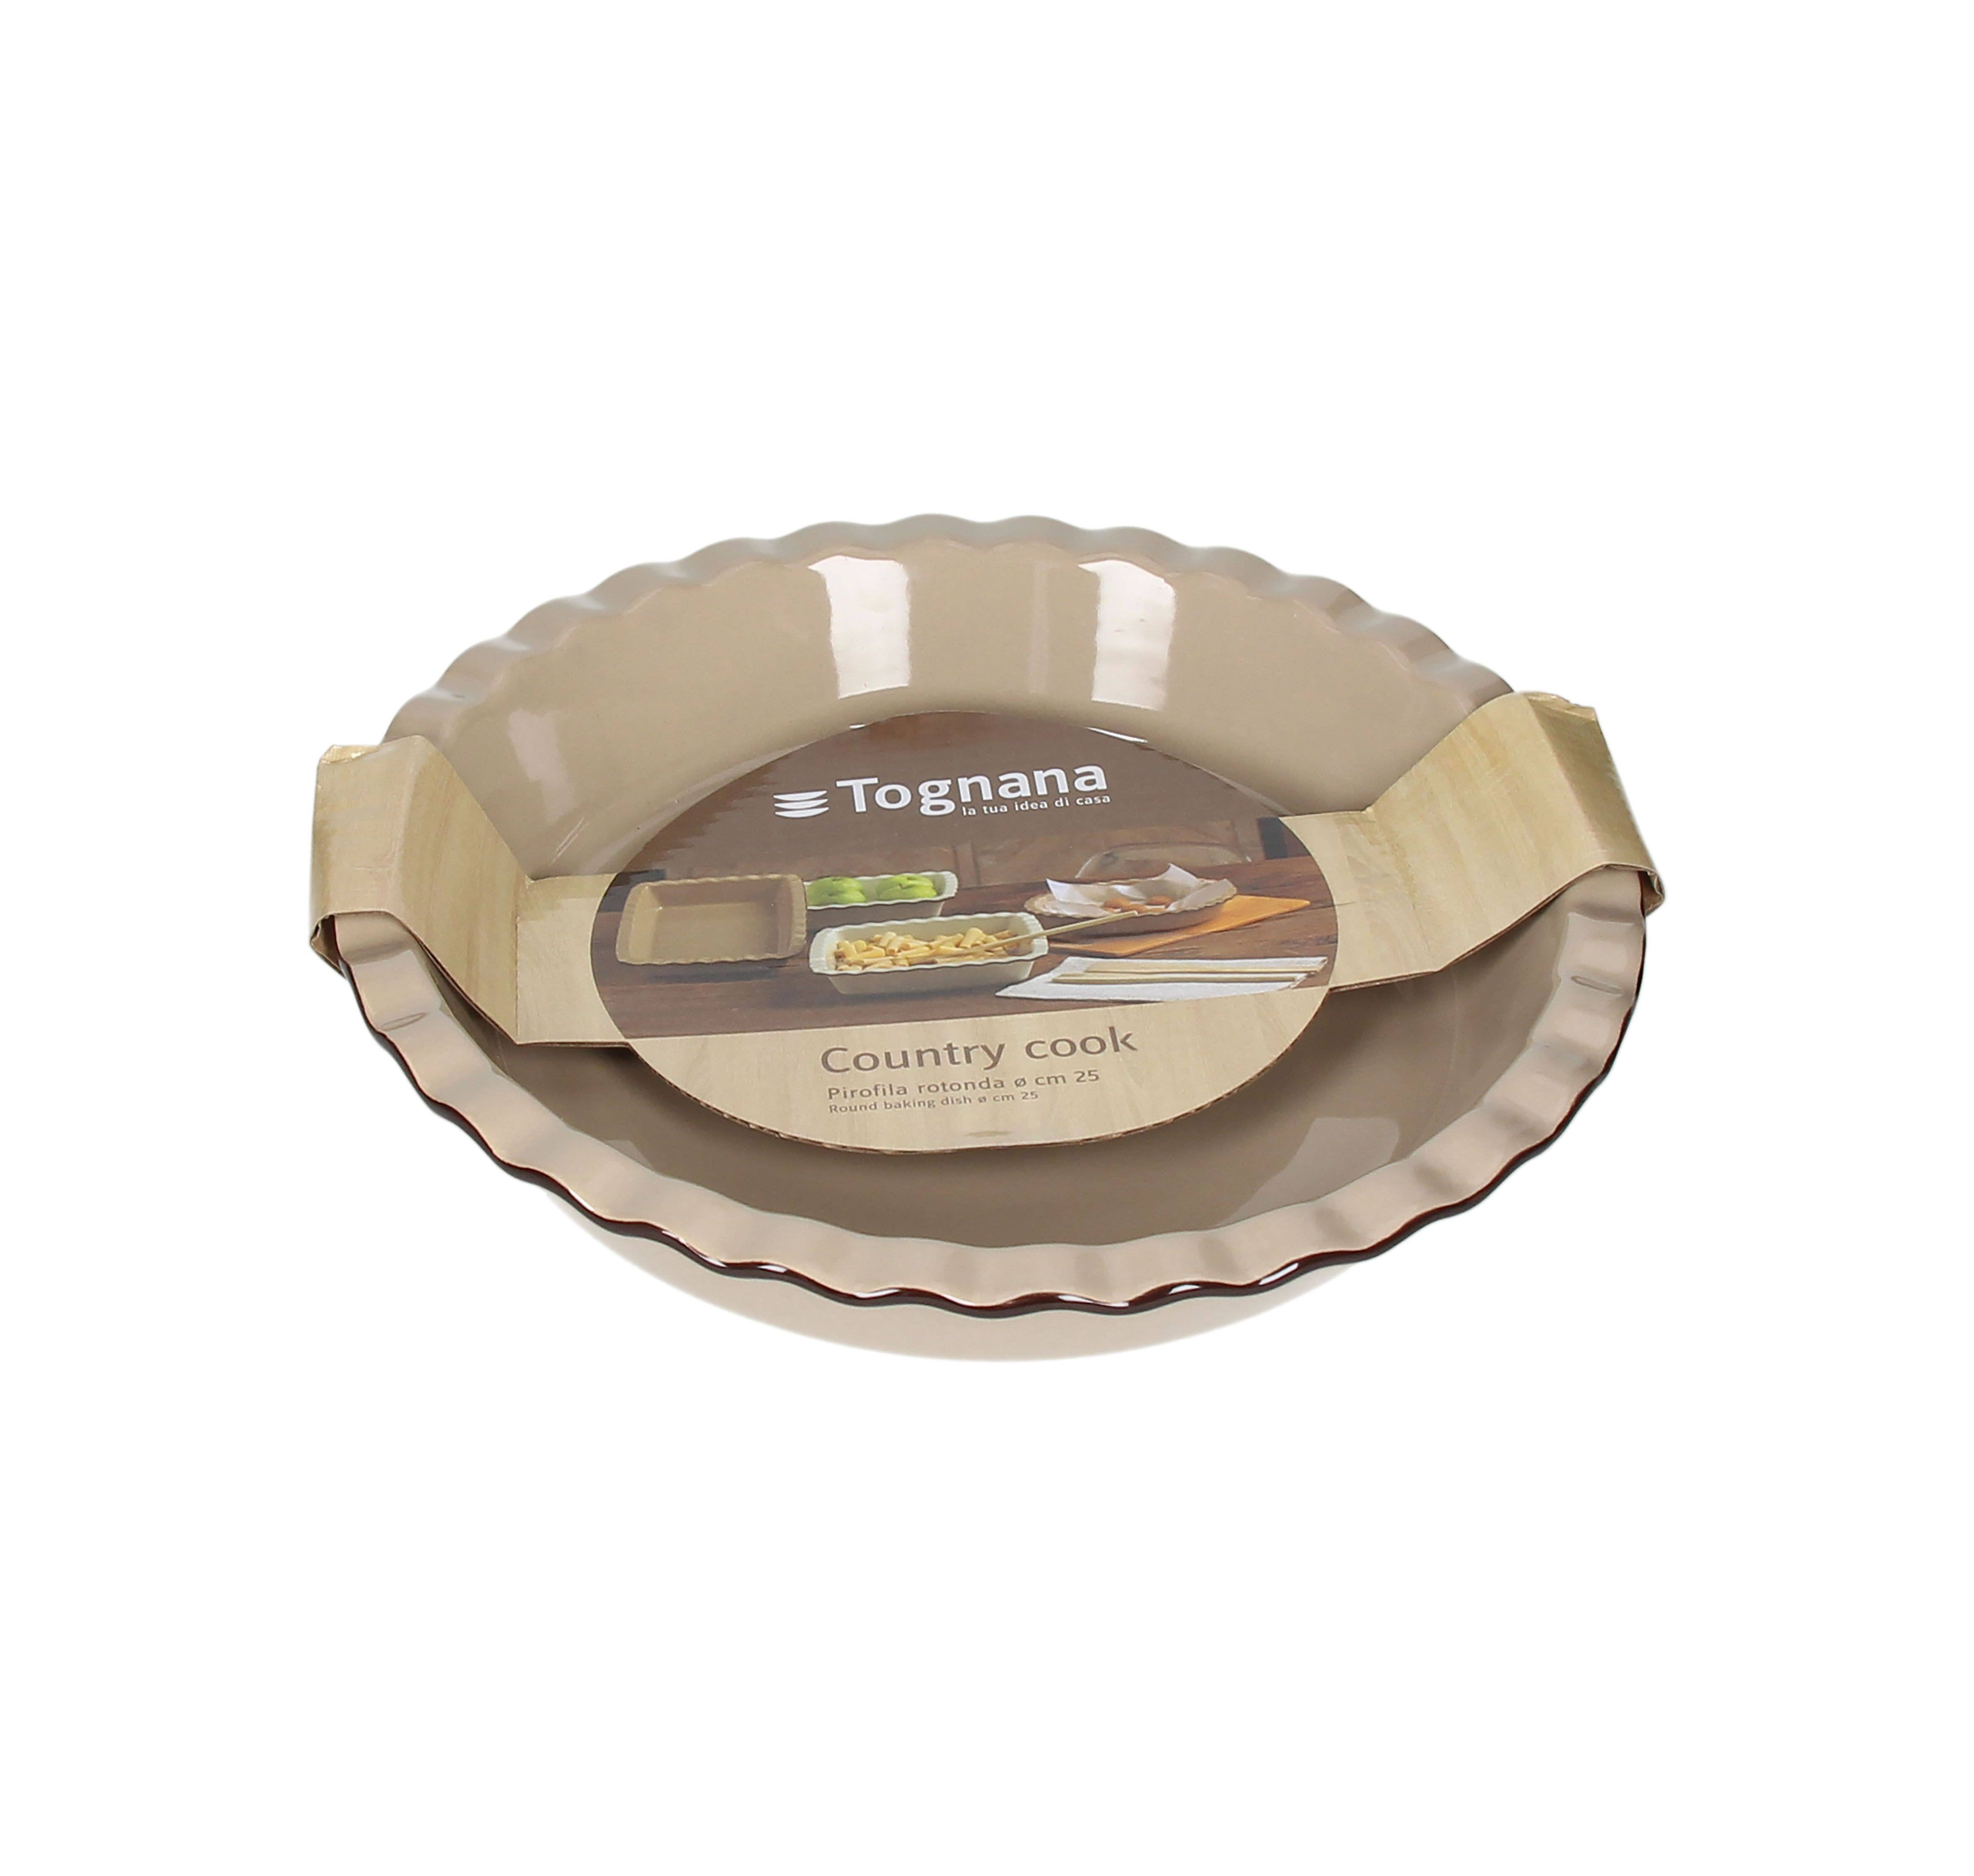 """10"""" Round Country Cook Baking Dish   Trada Marketplace"""